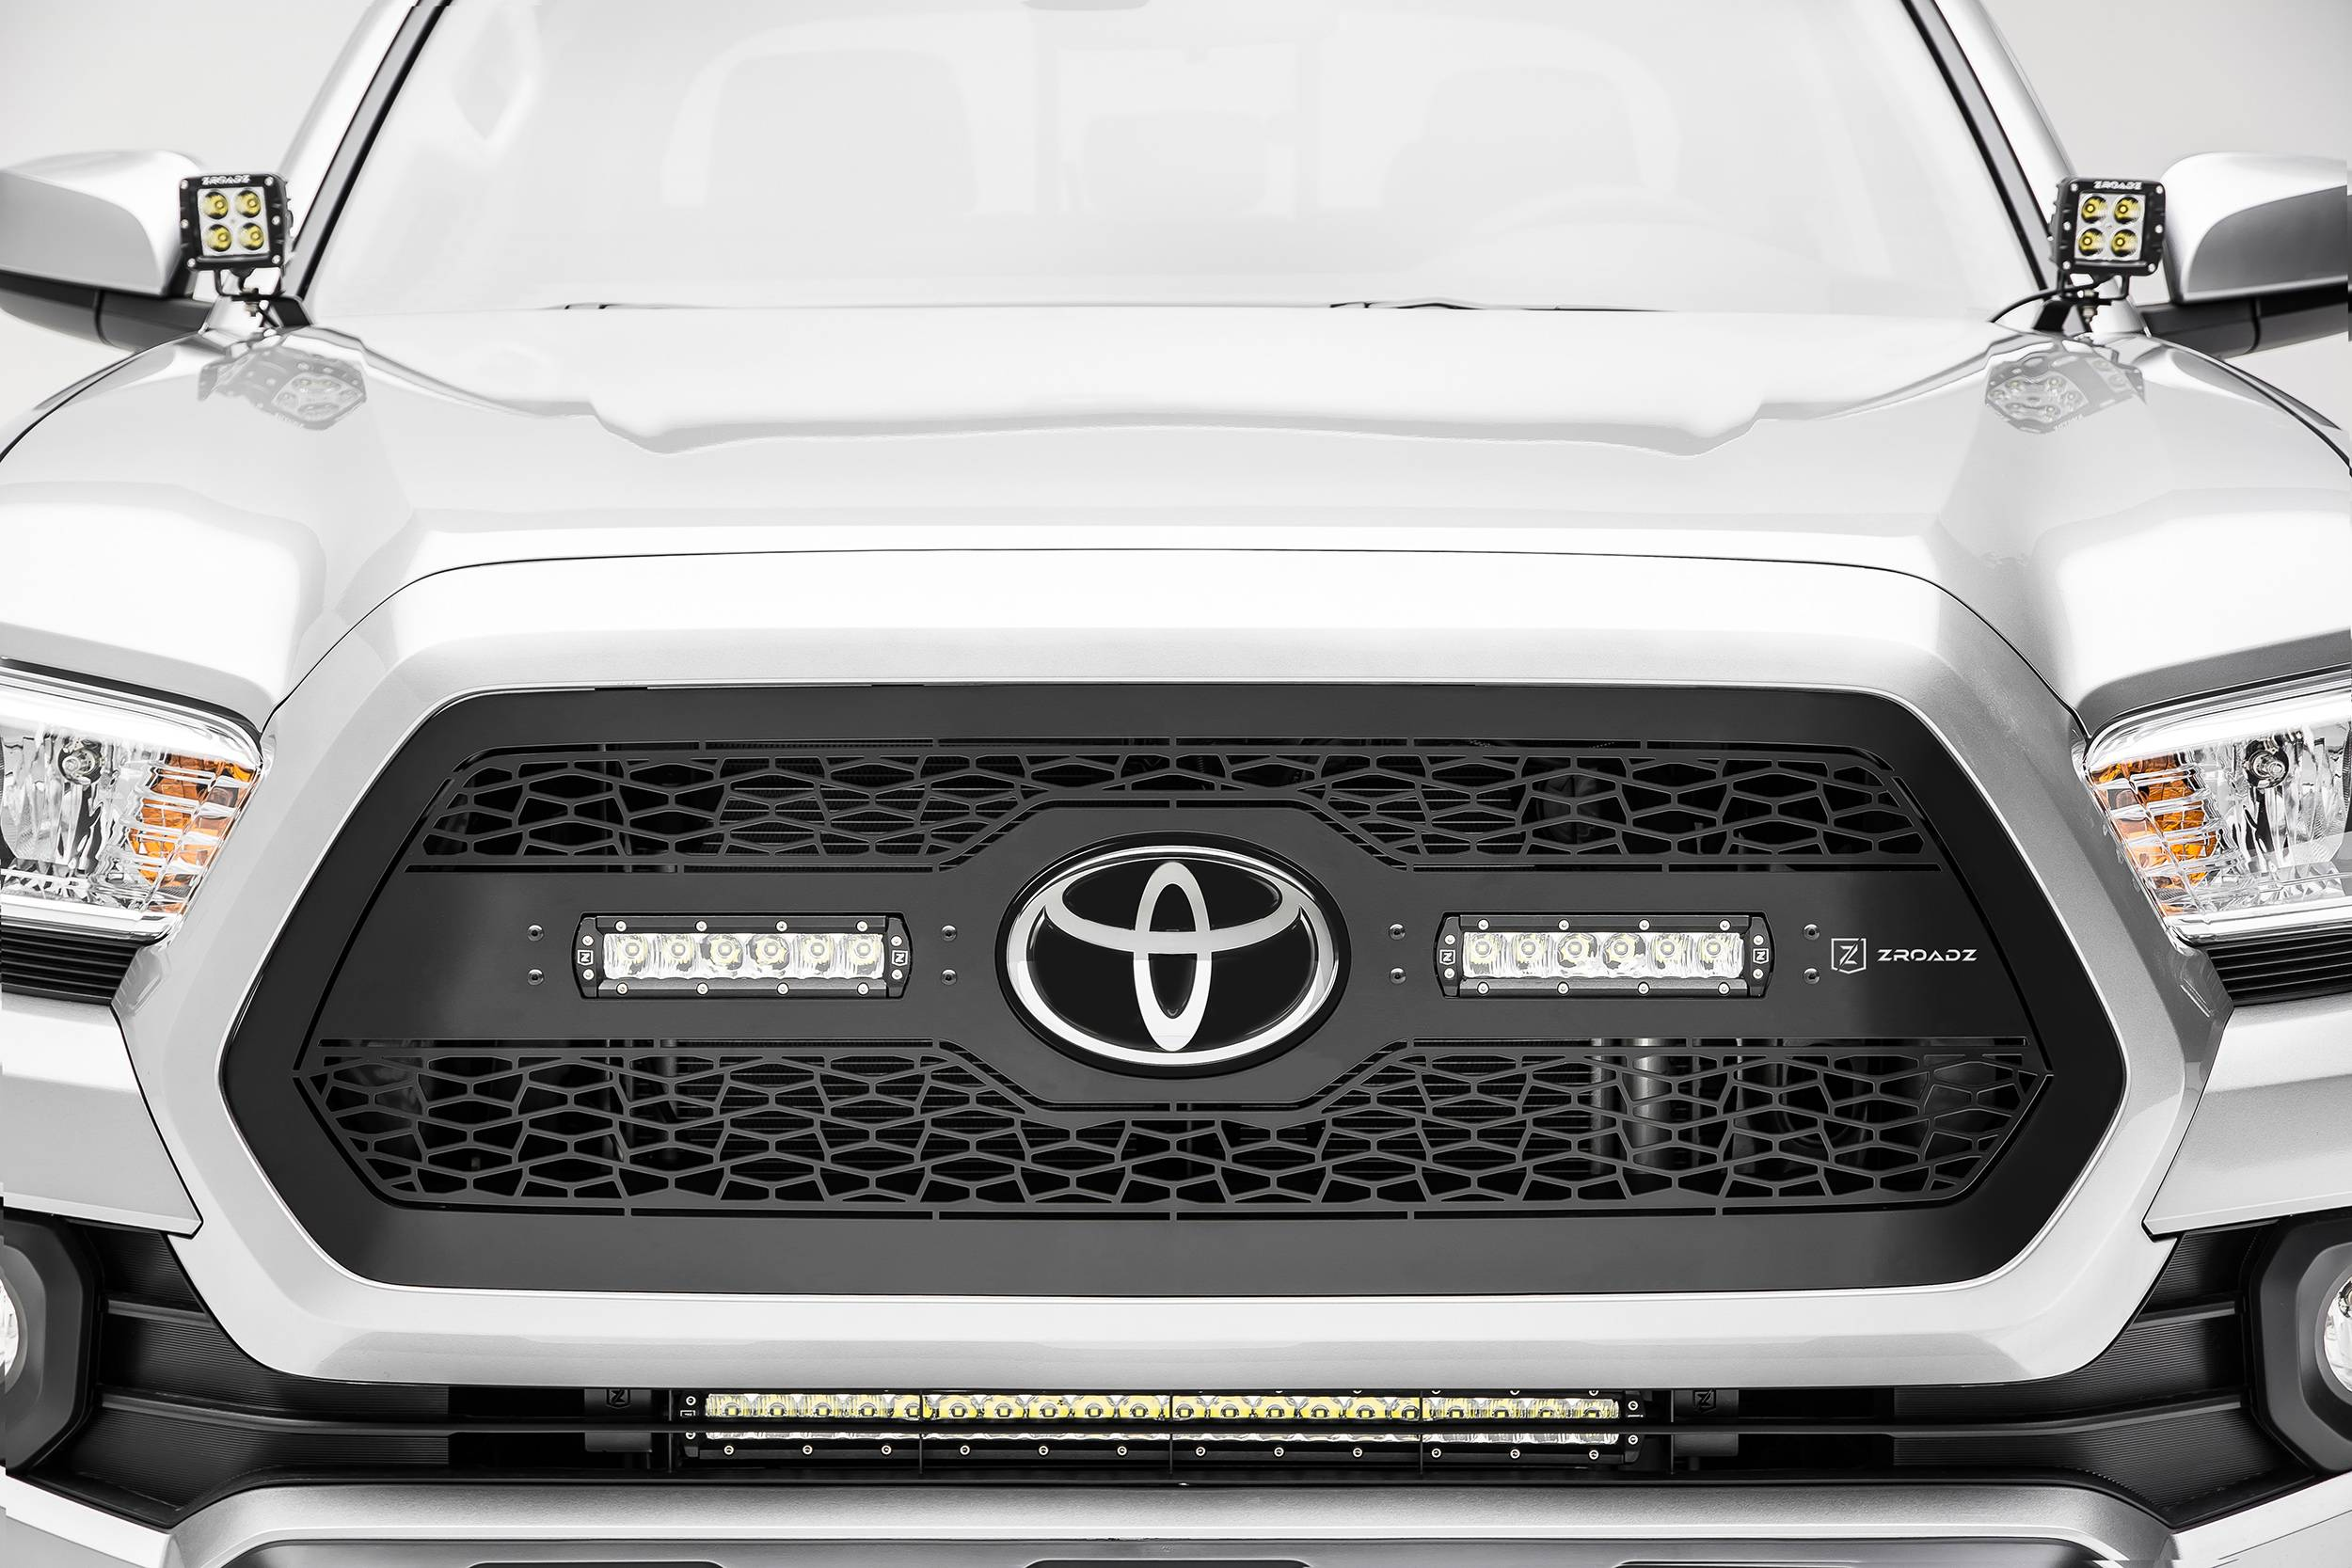 Toyota Tacoma - ZROADZ Series - Main Insert - Grille w/ two 6 Inch Slim Line Single Row LED Light Bar - Includes Universal Wiring Harness - Accepts factory TSS logo - Part# Z319511